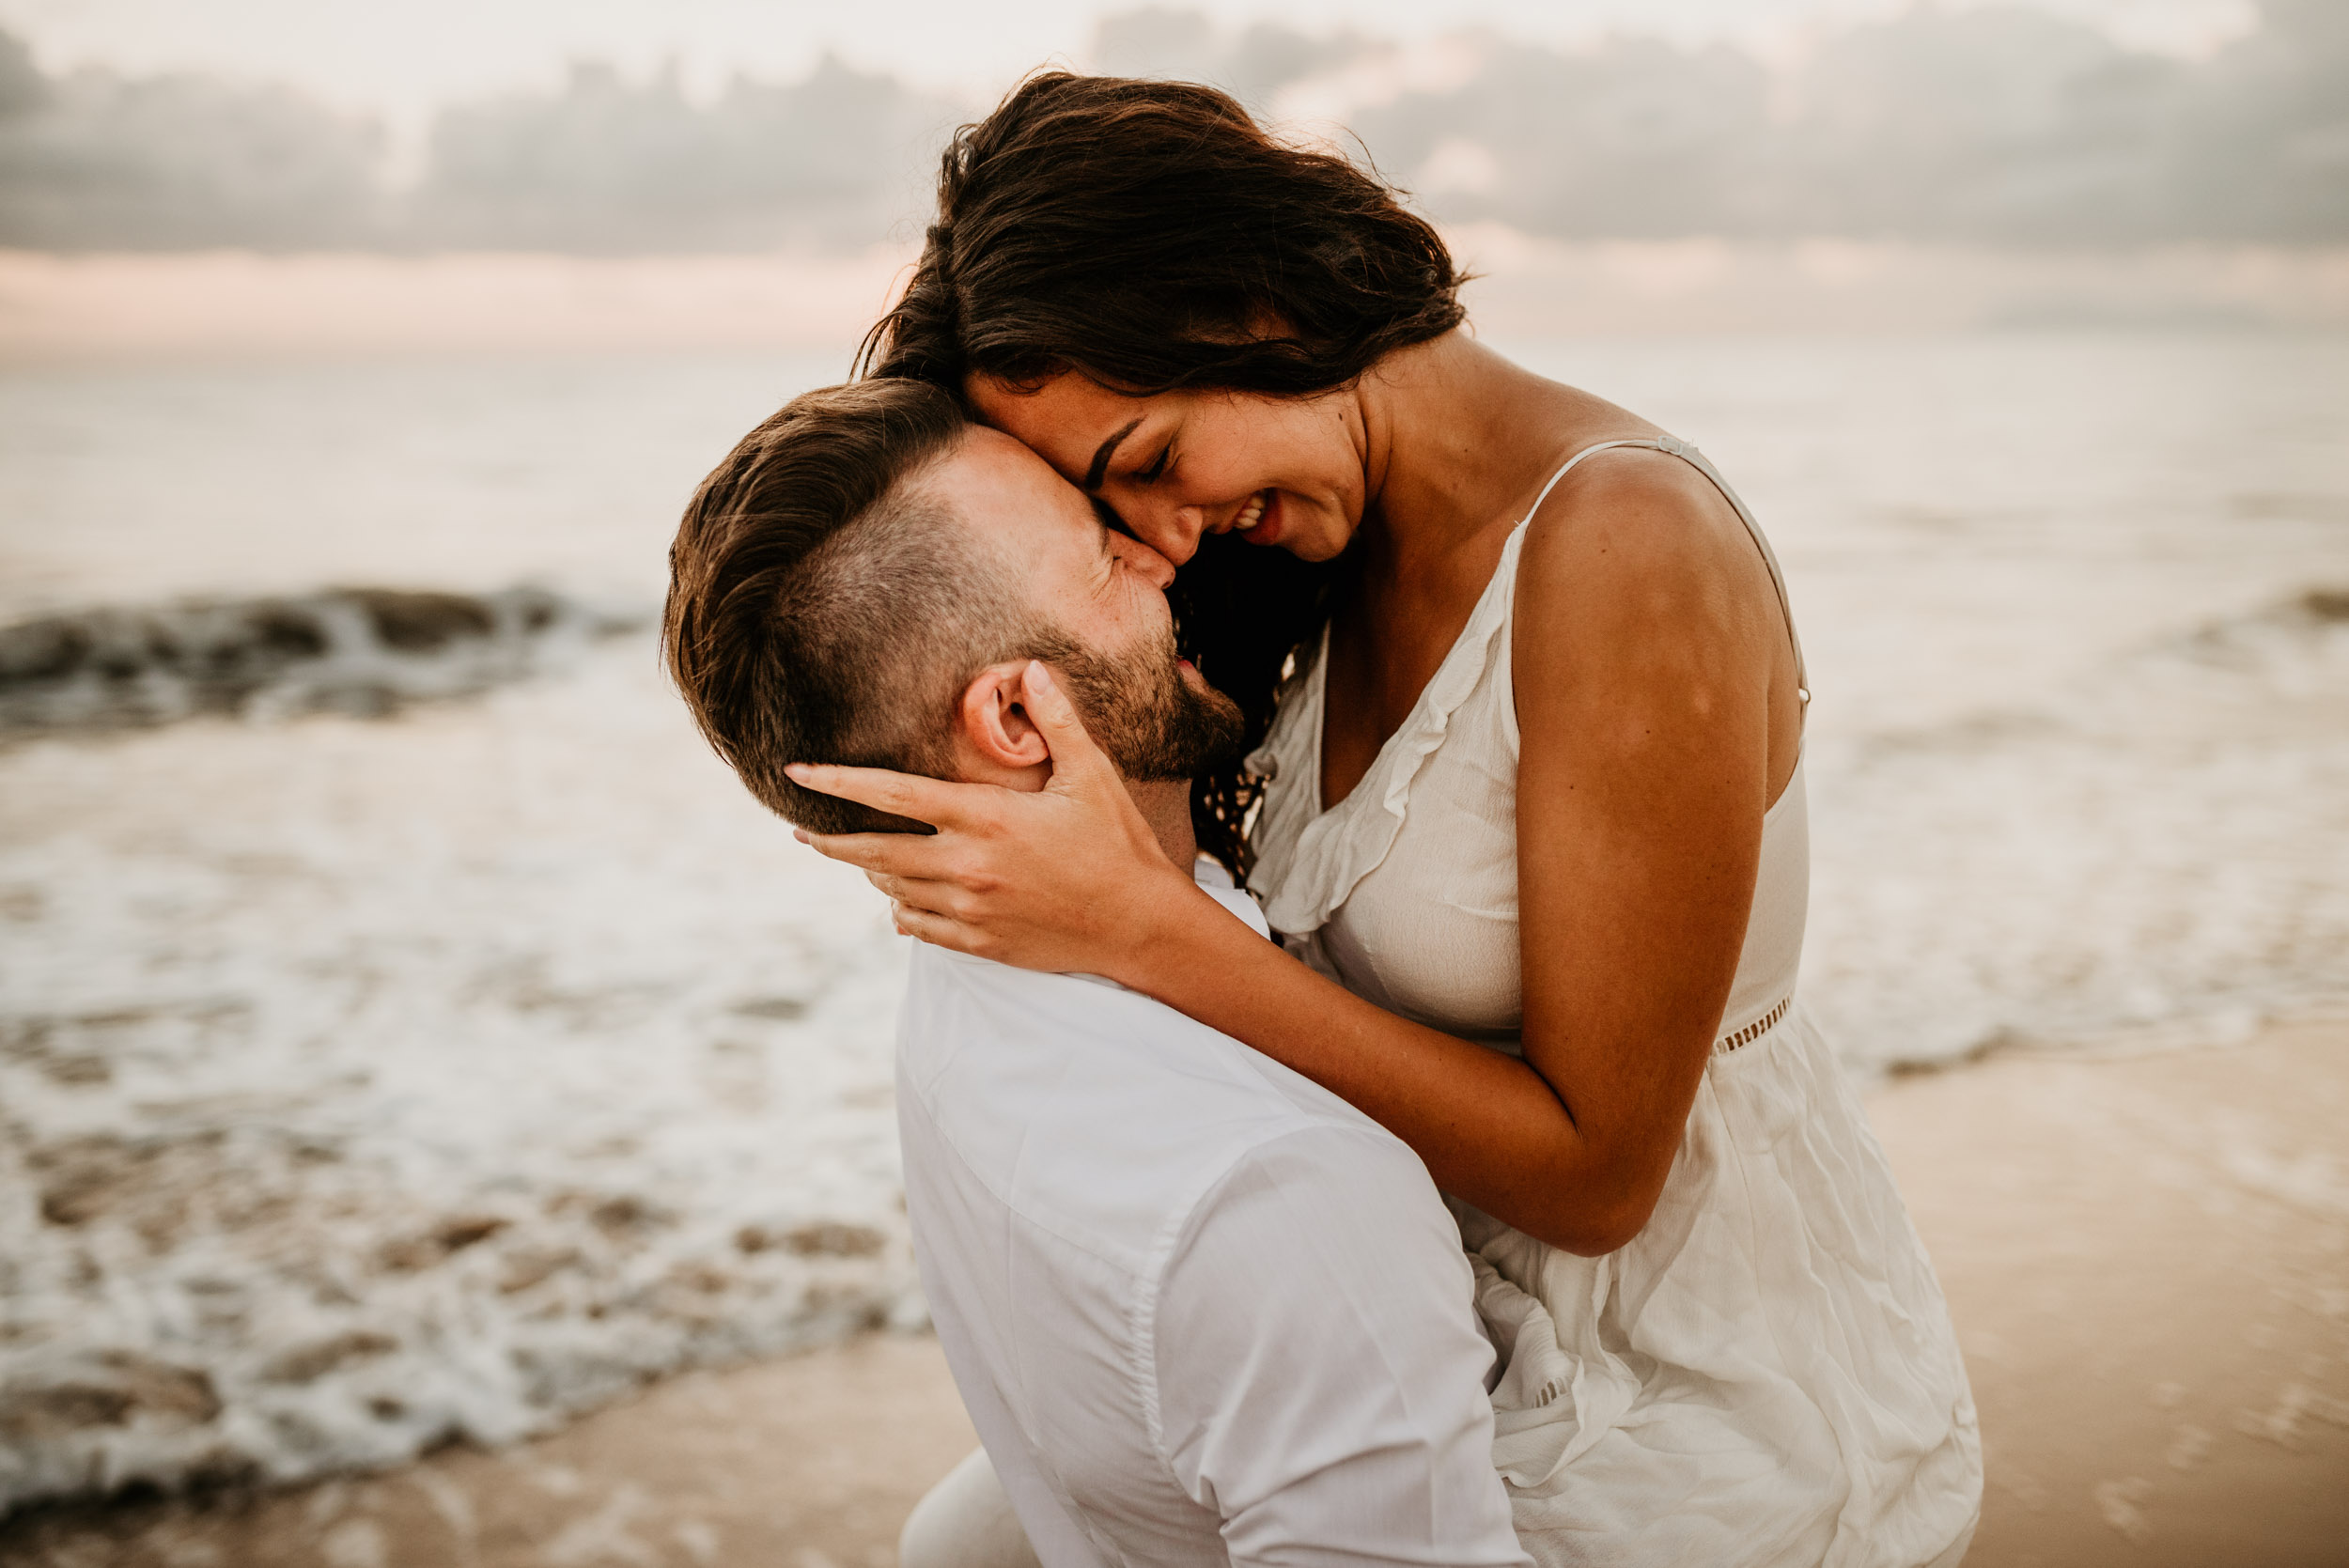 The Raw Photographer - Cairns Wedding Photographer - Engaged Engagement - Beach location - Candid Photography Queensland-5.jpg